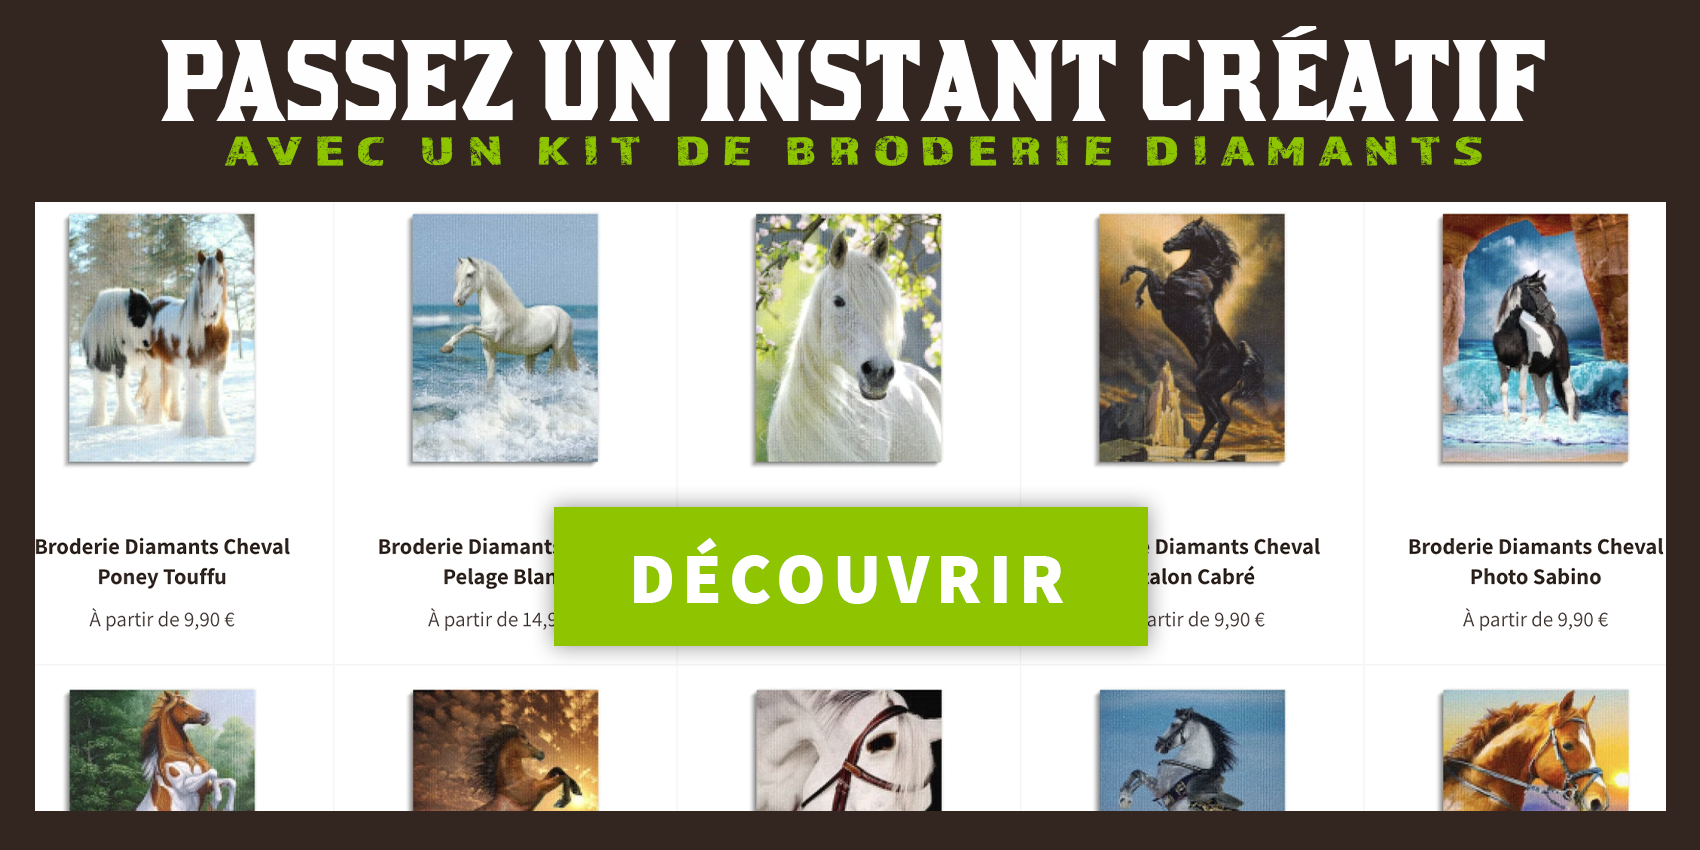 Nos broderies diamants cheval